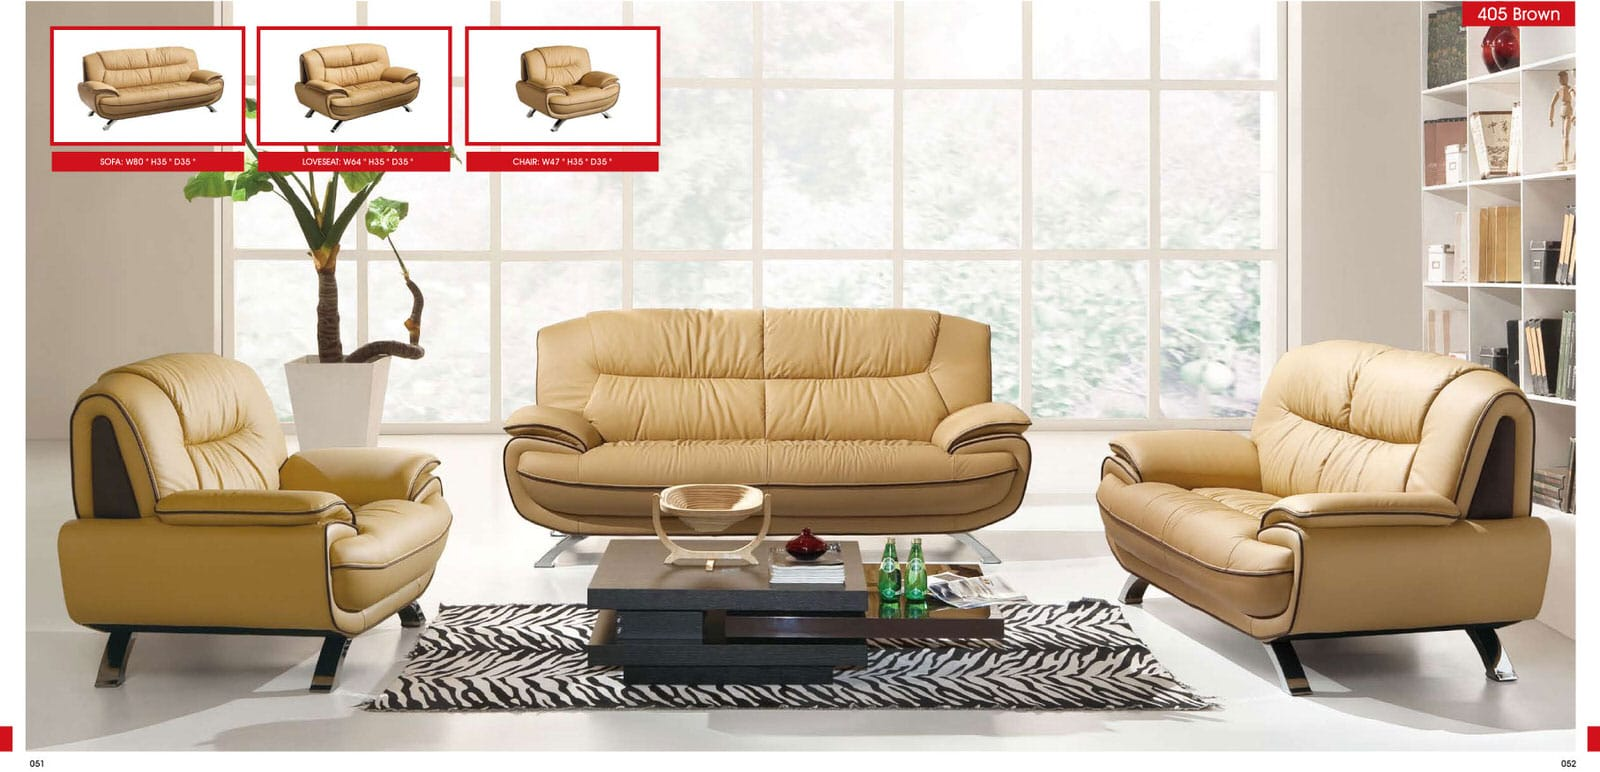 Oversized Living Room Chair 405 Brown Leather Sofa Set By Esf